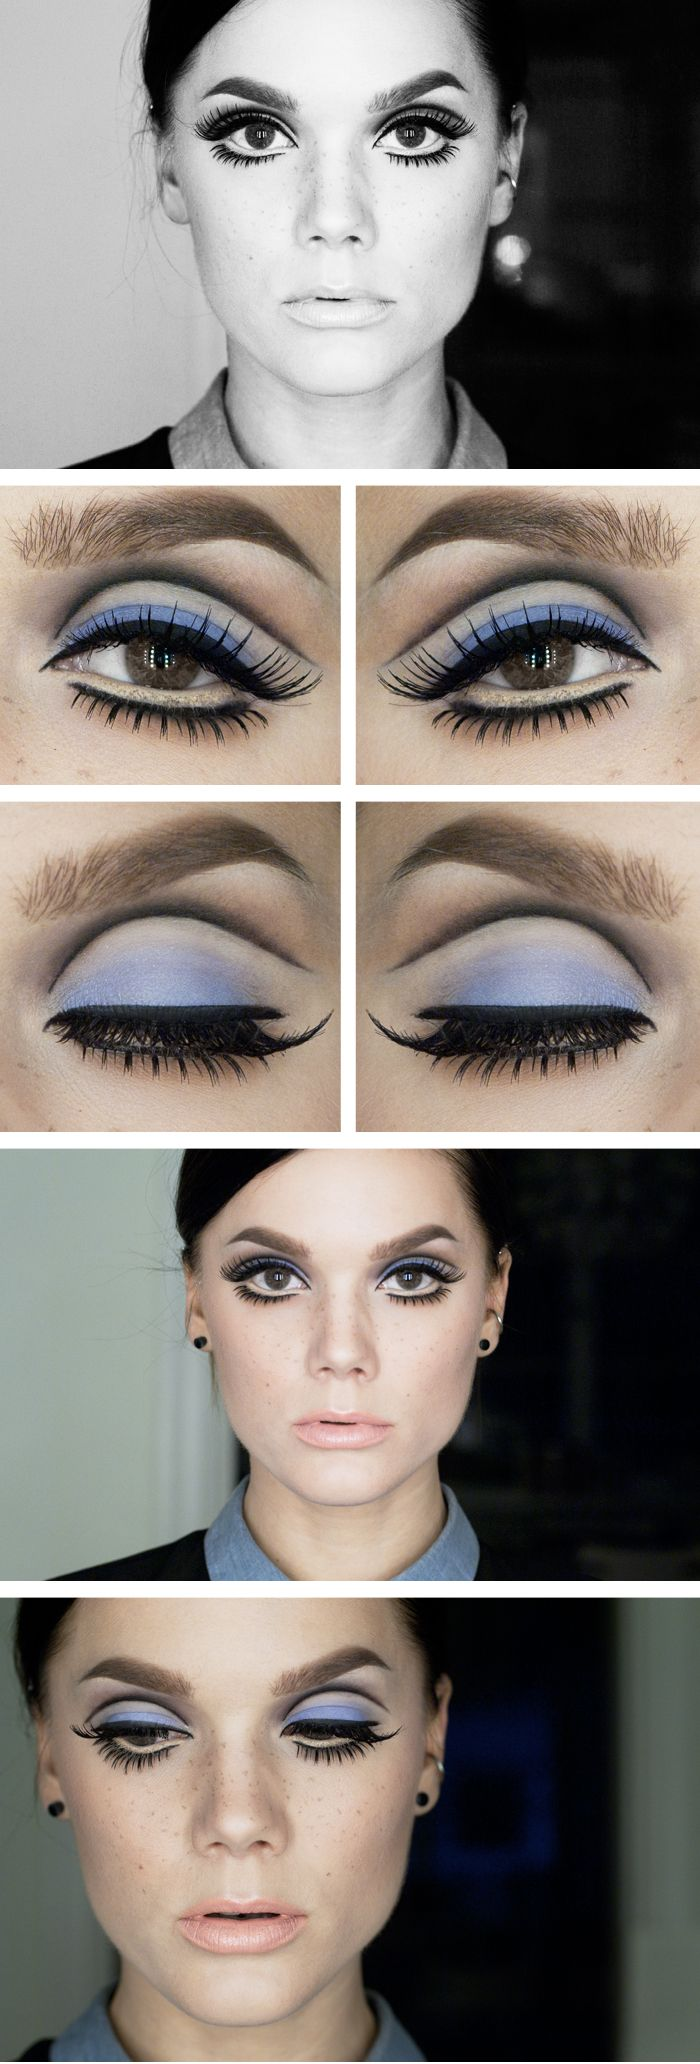 RETRO 60'S STYLE MAKE-UP. Lower lashes are coated with white or gold mascara to blend with the extra large faux waterline, thereby making the false lower lashes truly pop.